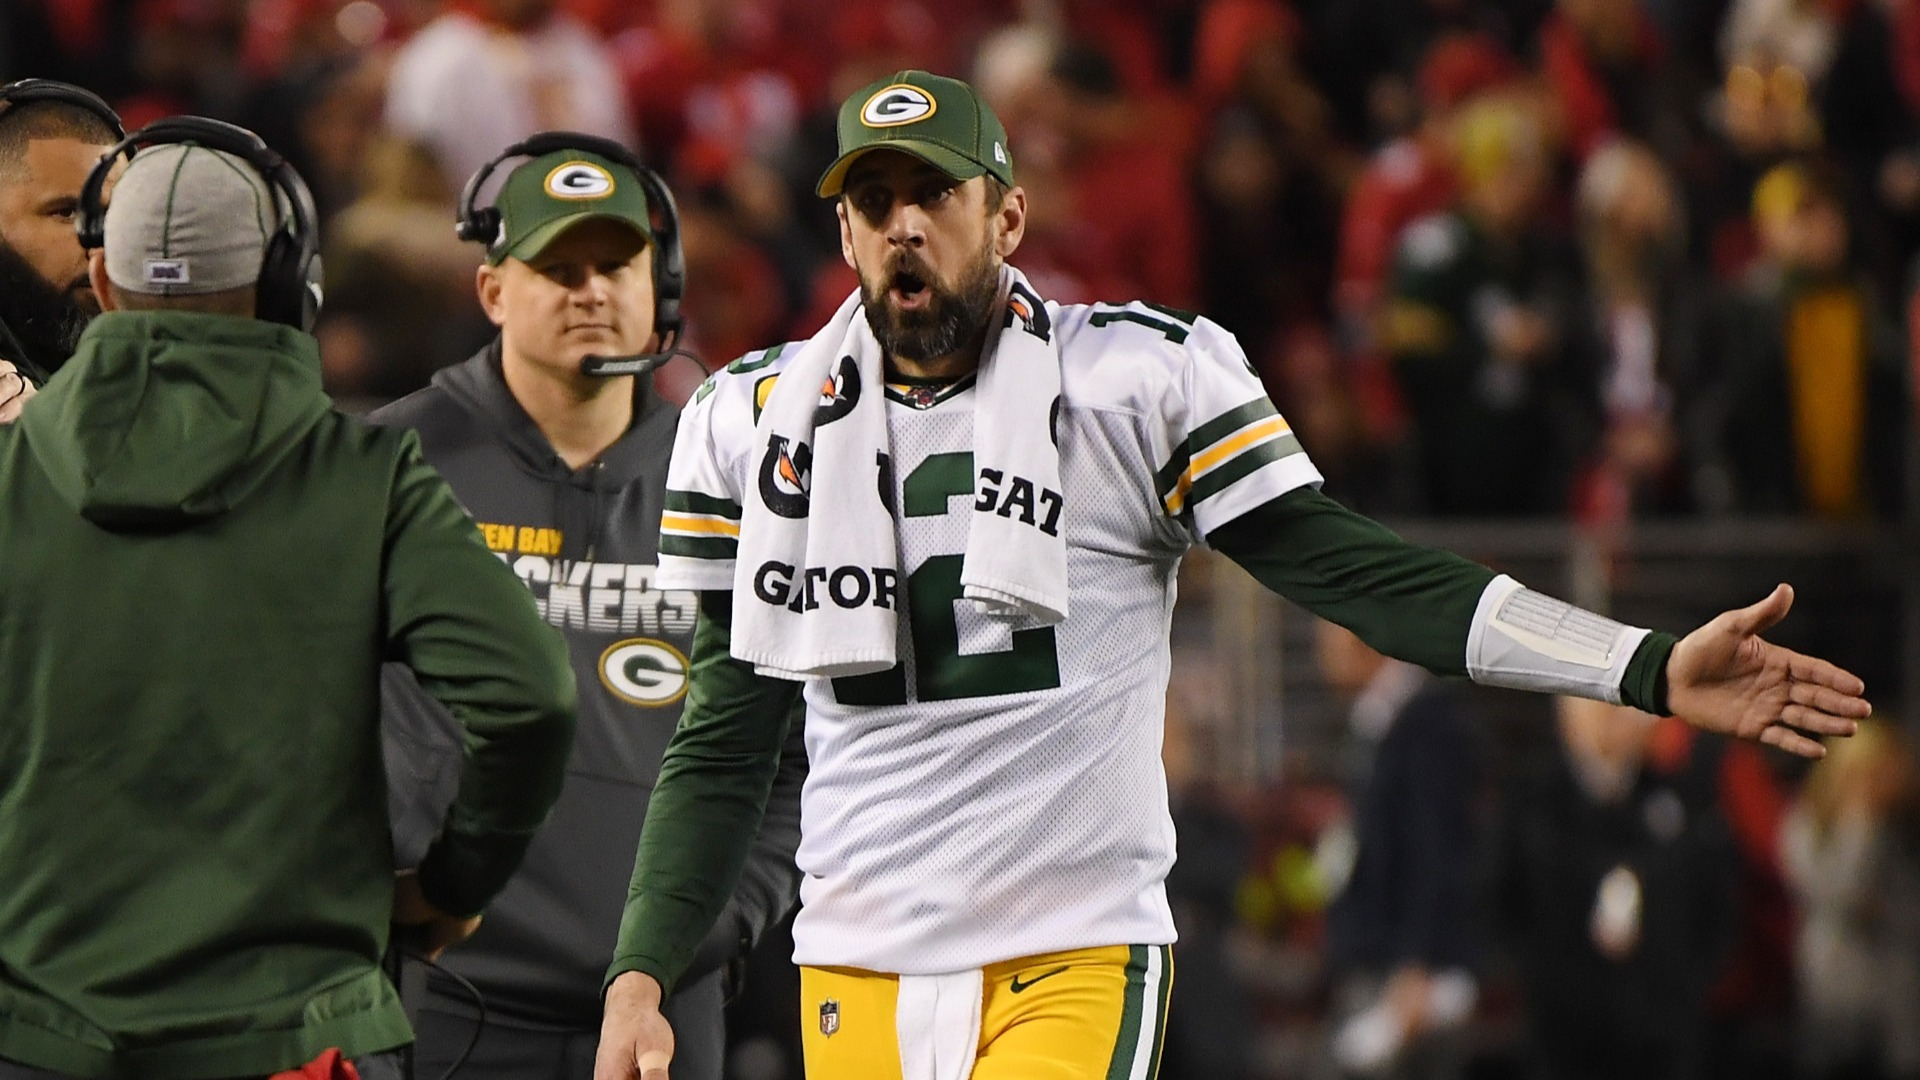 Aging Aaron Rodgers insists Super Bowl window still open for Packers